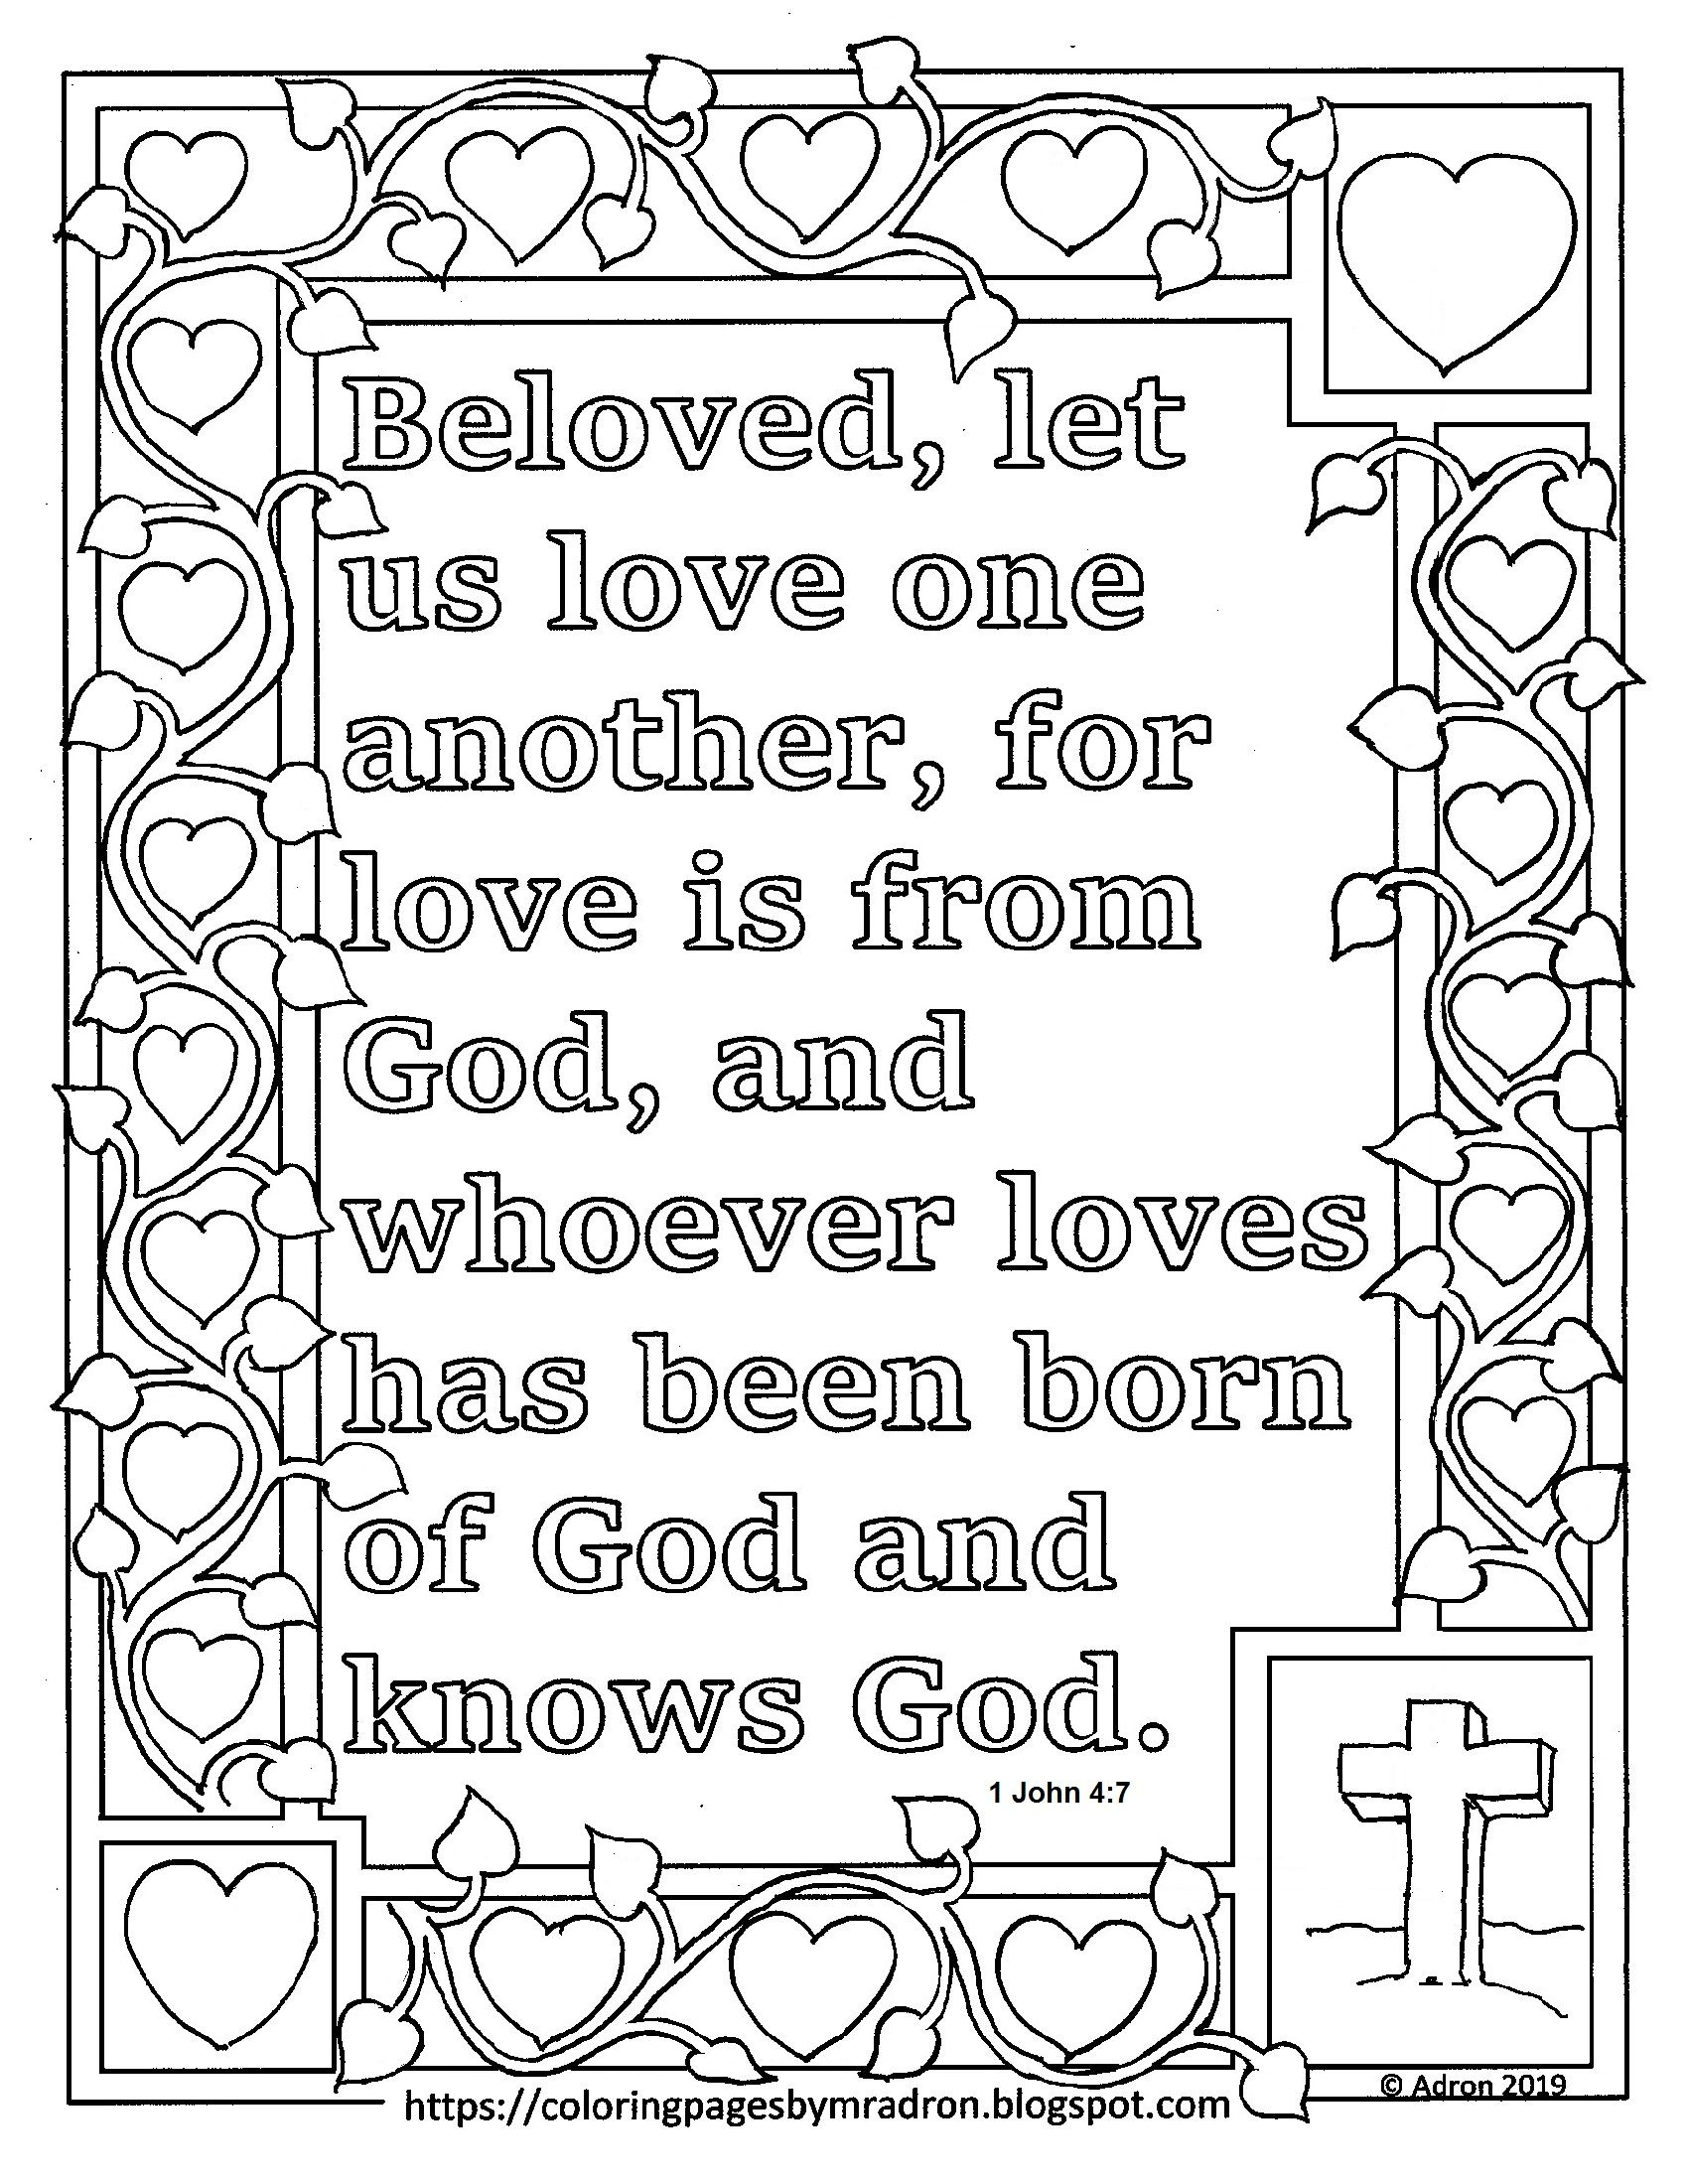 1 John 4 7 Print And Color Page Let Us Love One Another Bible Verse Love One Another Bible Love Coloring Pages Printable Coloring Pages